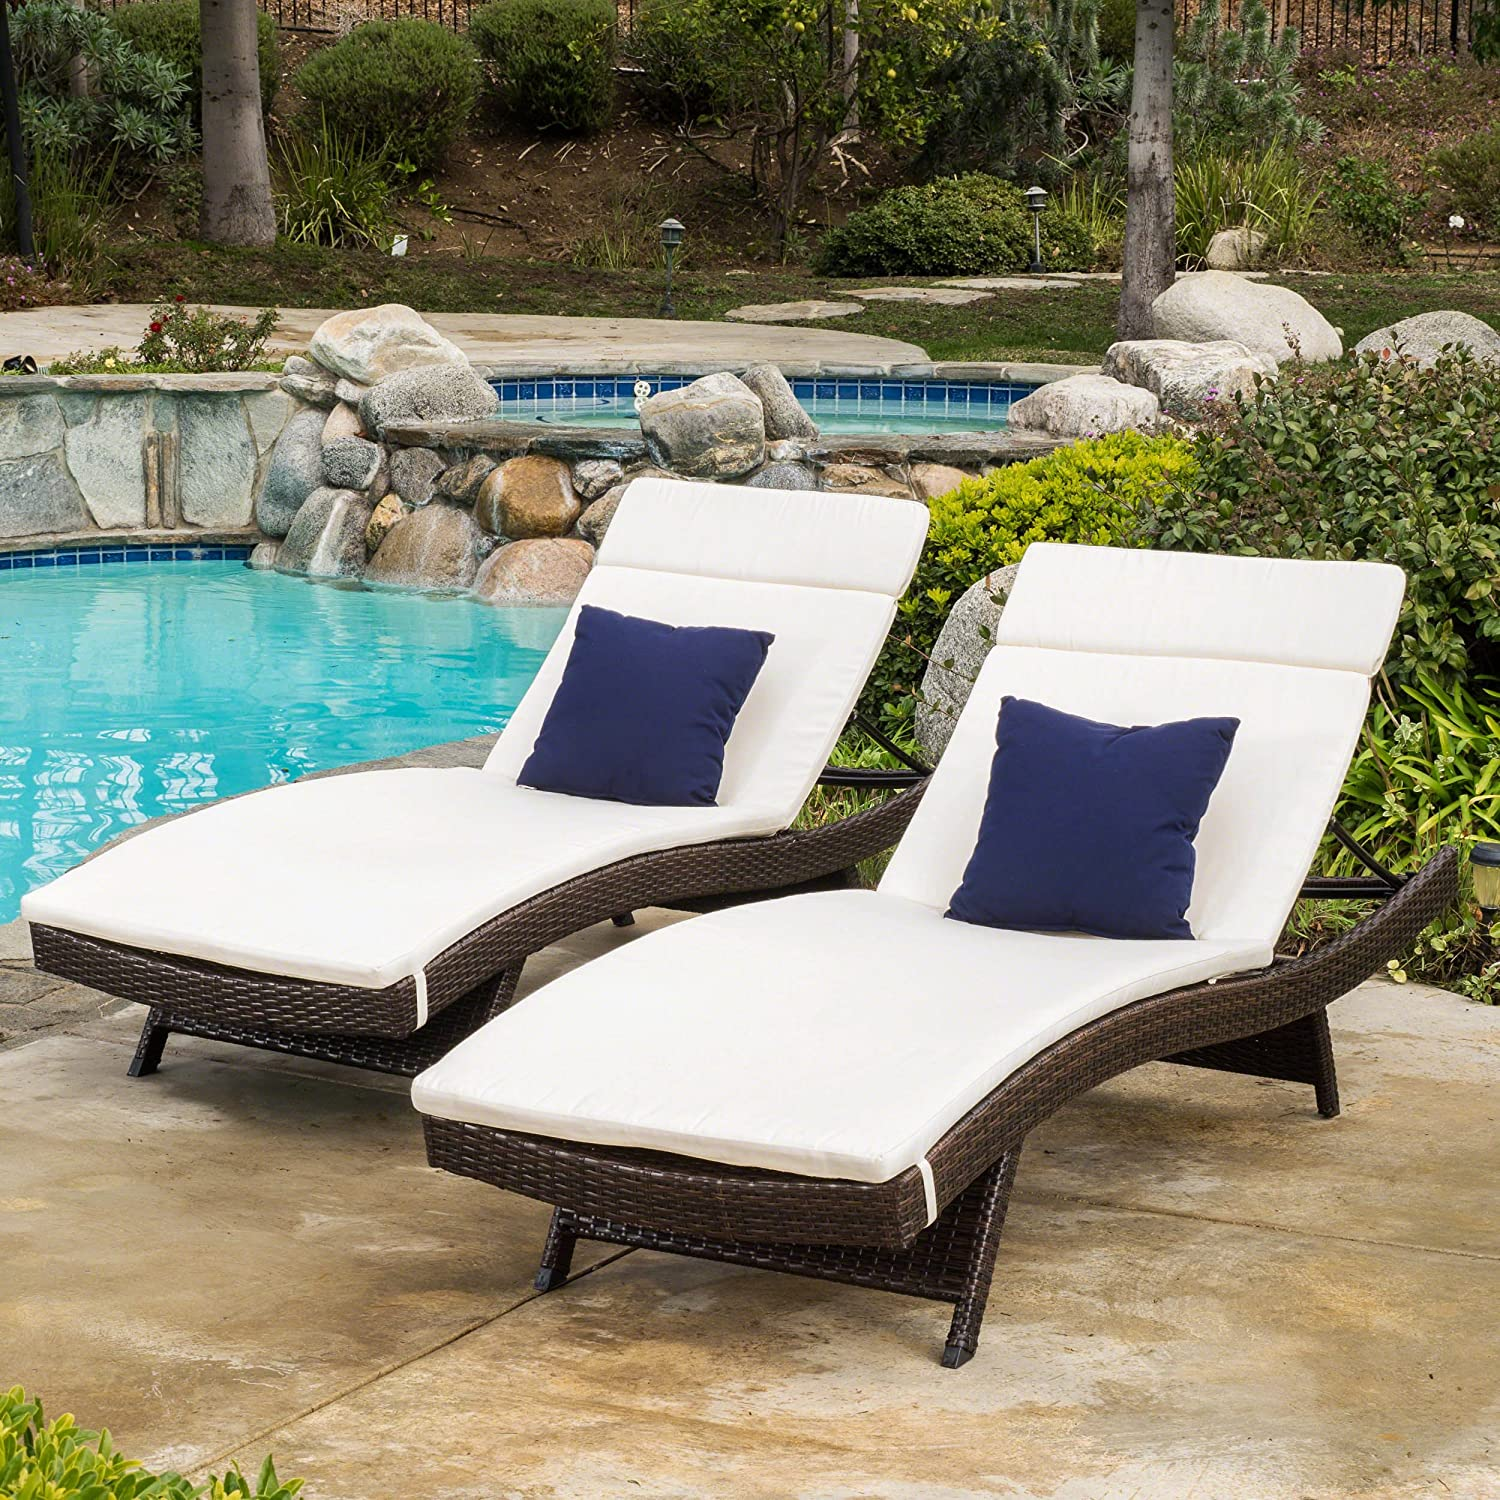 Amazon Com Lakeport Patio Outdoor Chaise Lounge Chair Cushions